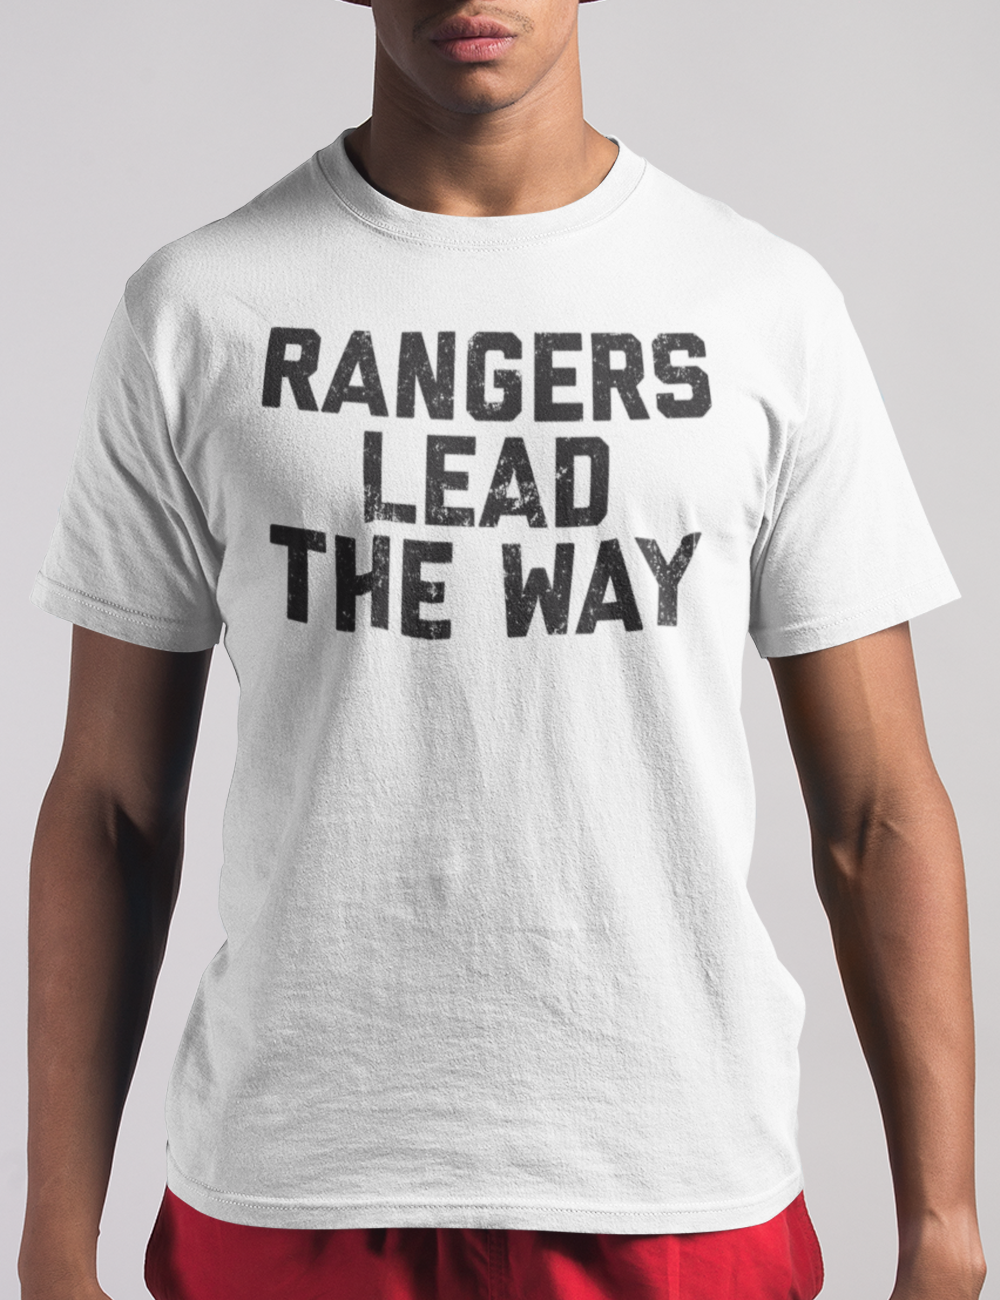 Rangers Lead The Way | T-Shirt